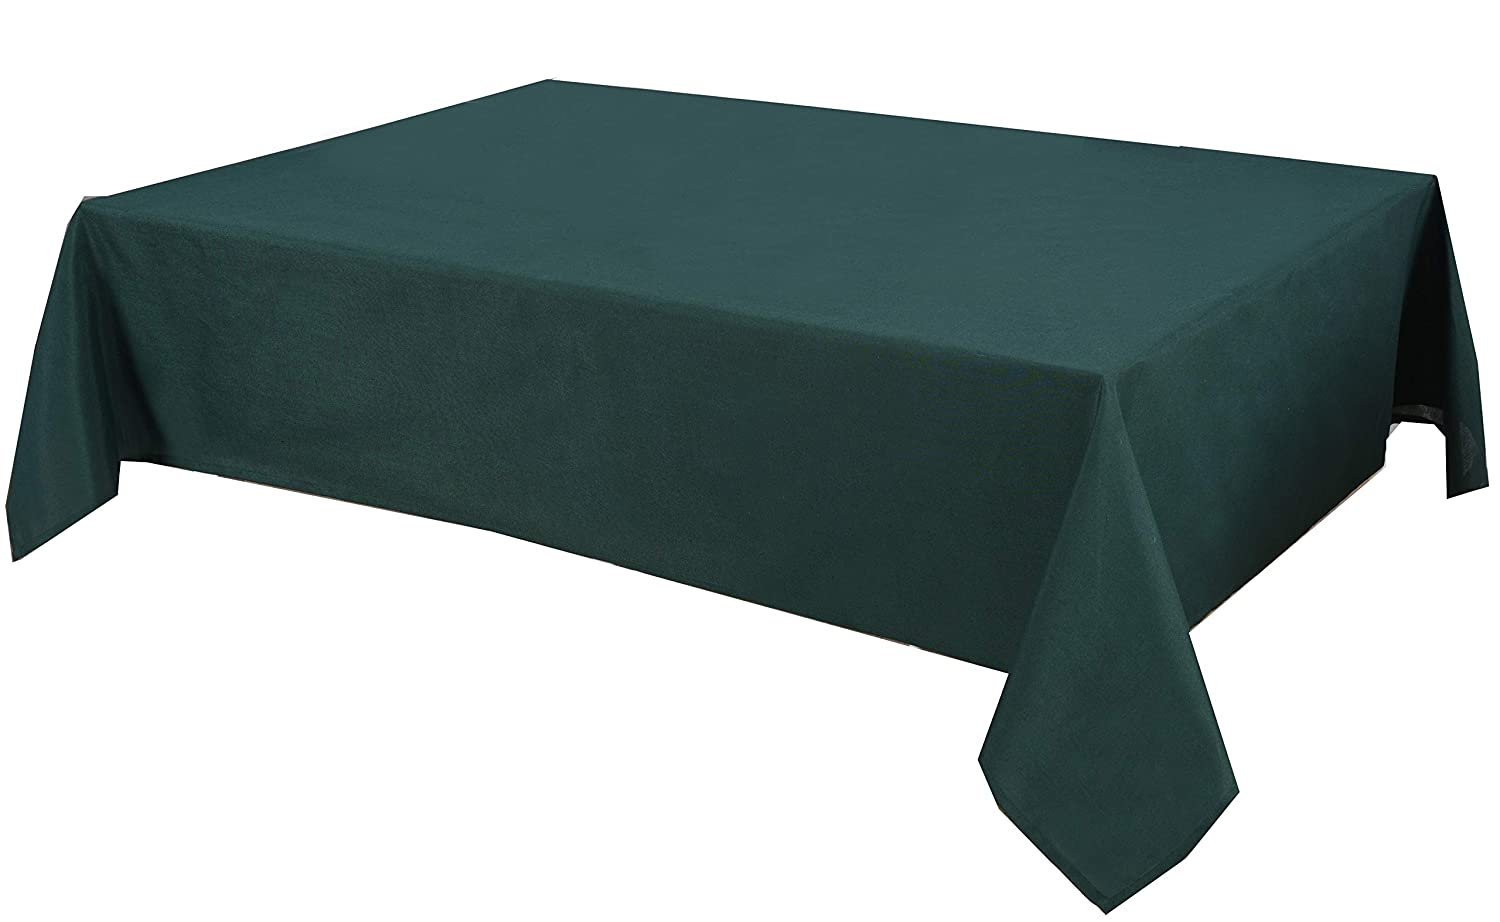 Biscaynebay Fabric Table Cloth, Water Resistant Spill Proof Fabric Tablecloths for Dining, Kitchen, Wedding and Party (60X84, Hunter Green)